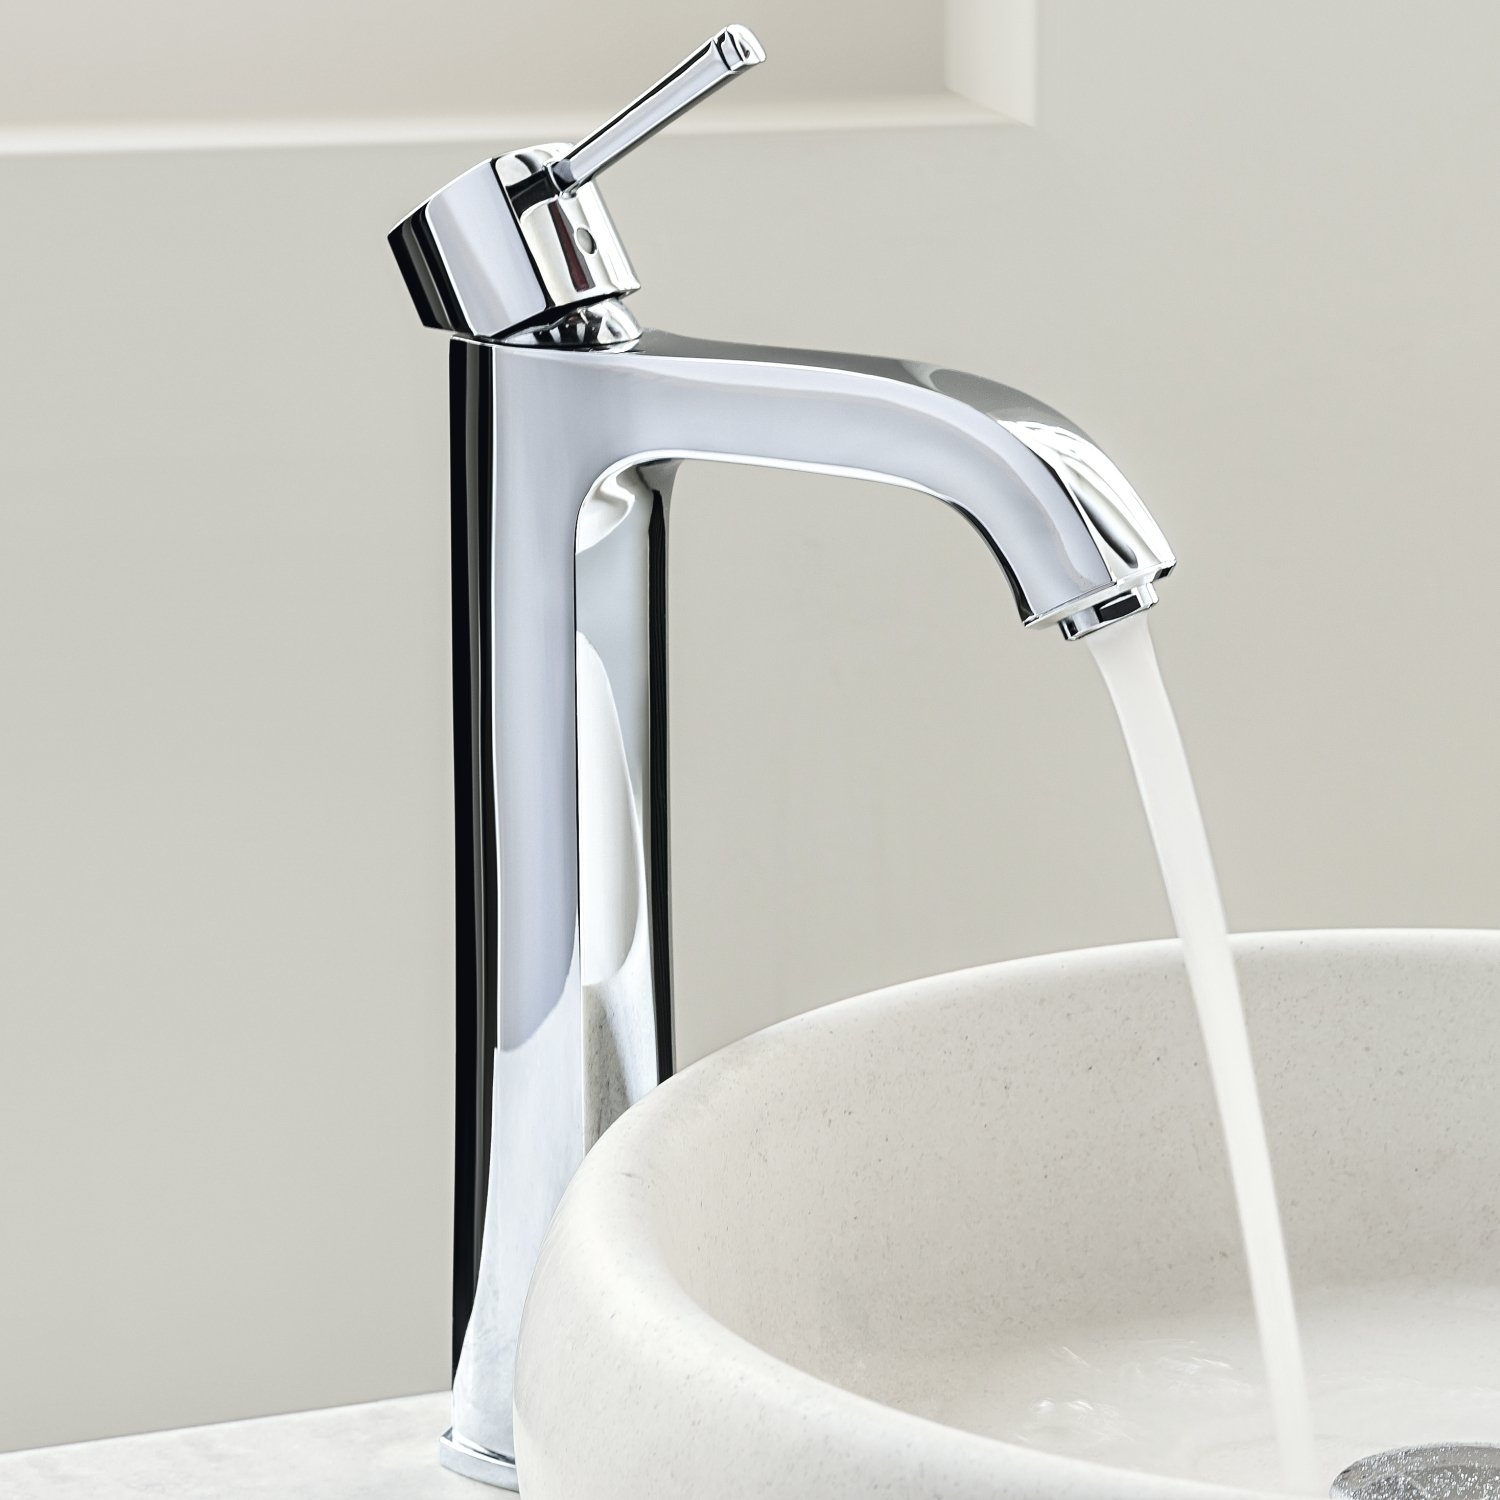 Grohe grandera basin tap for free standing basins (smooth body and ...